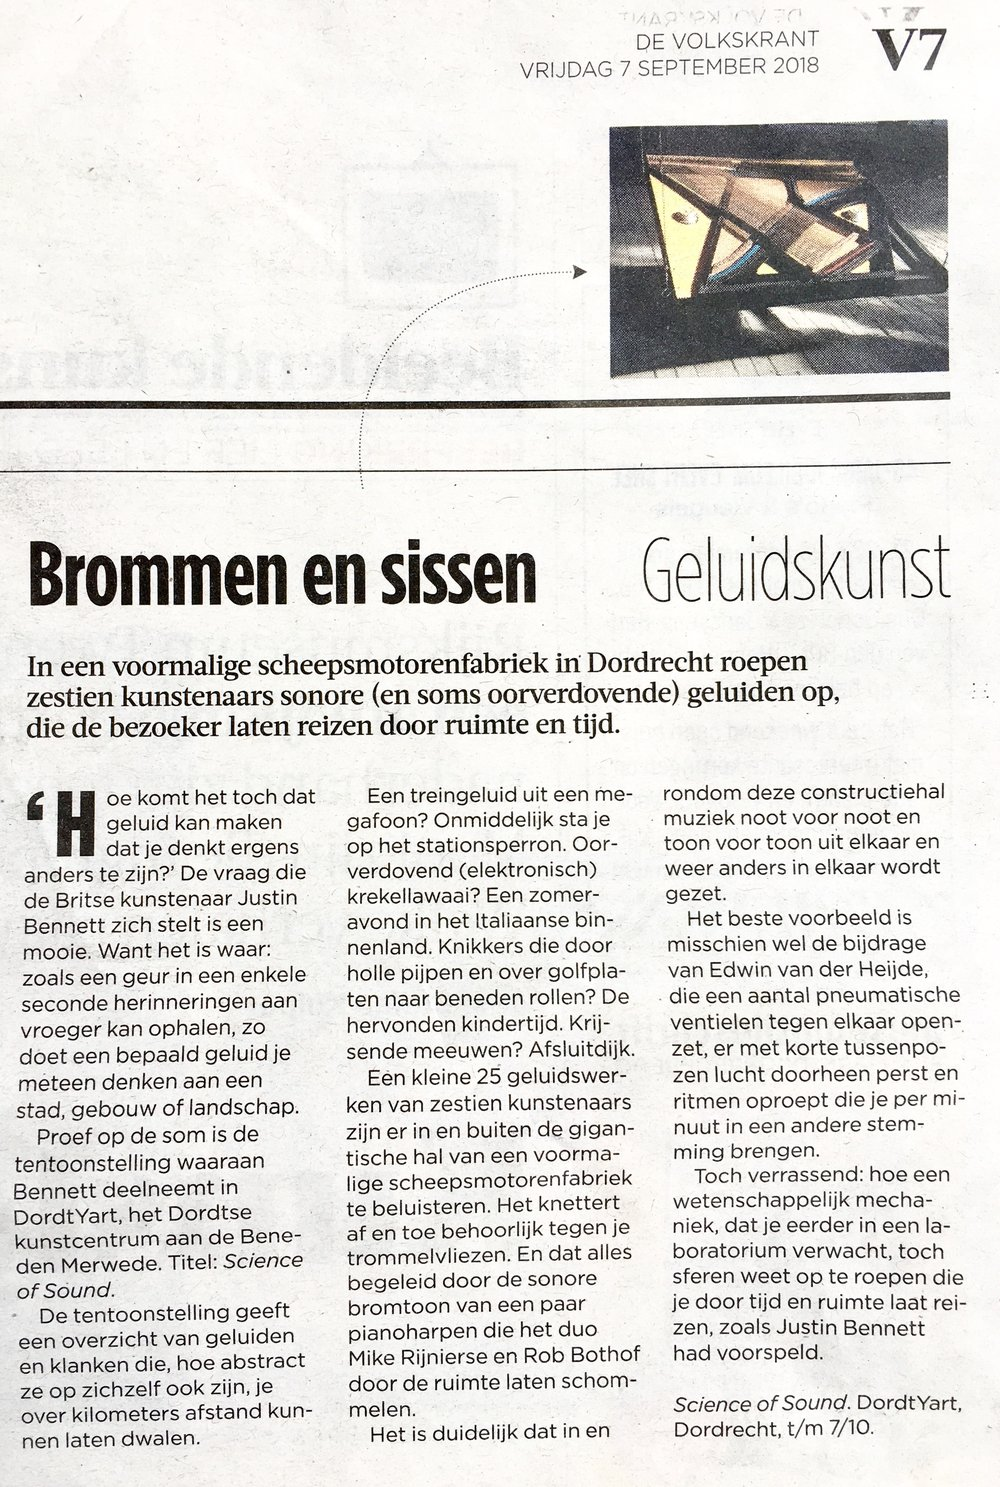 volkskrant science of sound